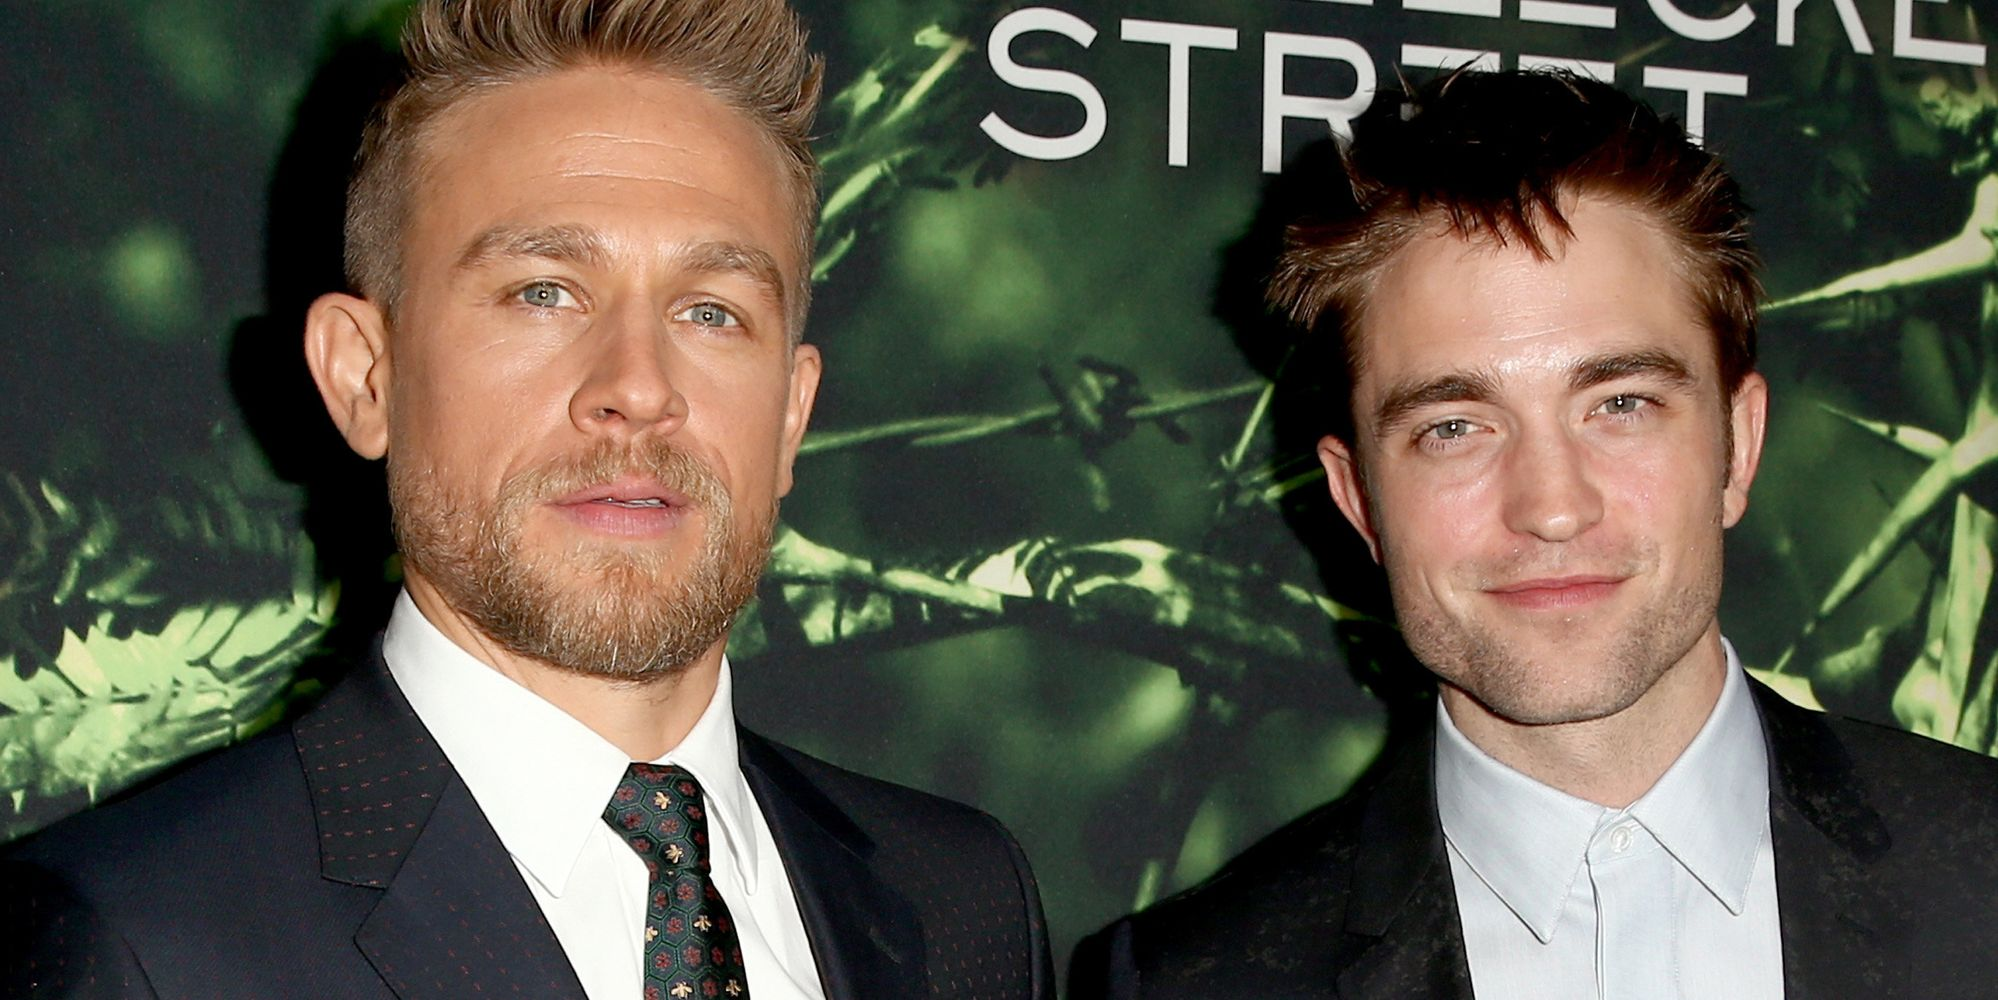 Robert Pattinson And Charlie Hunnam Each Dropped 35 Pounds For New Movie